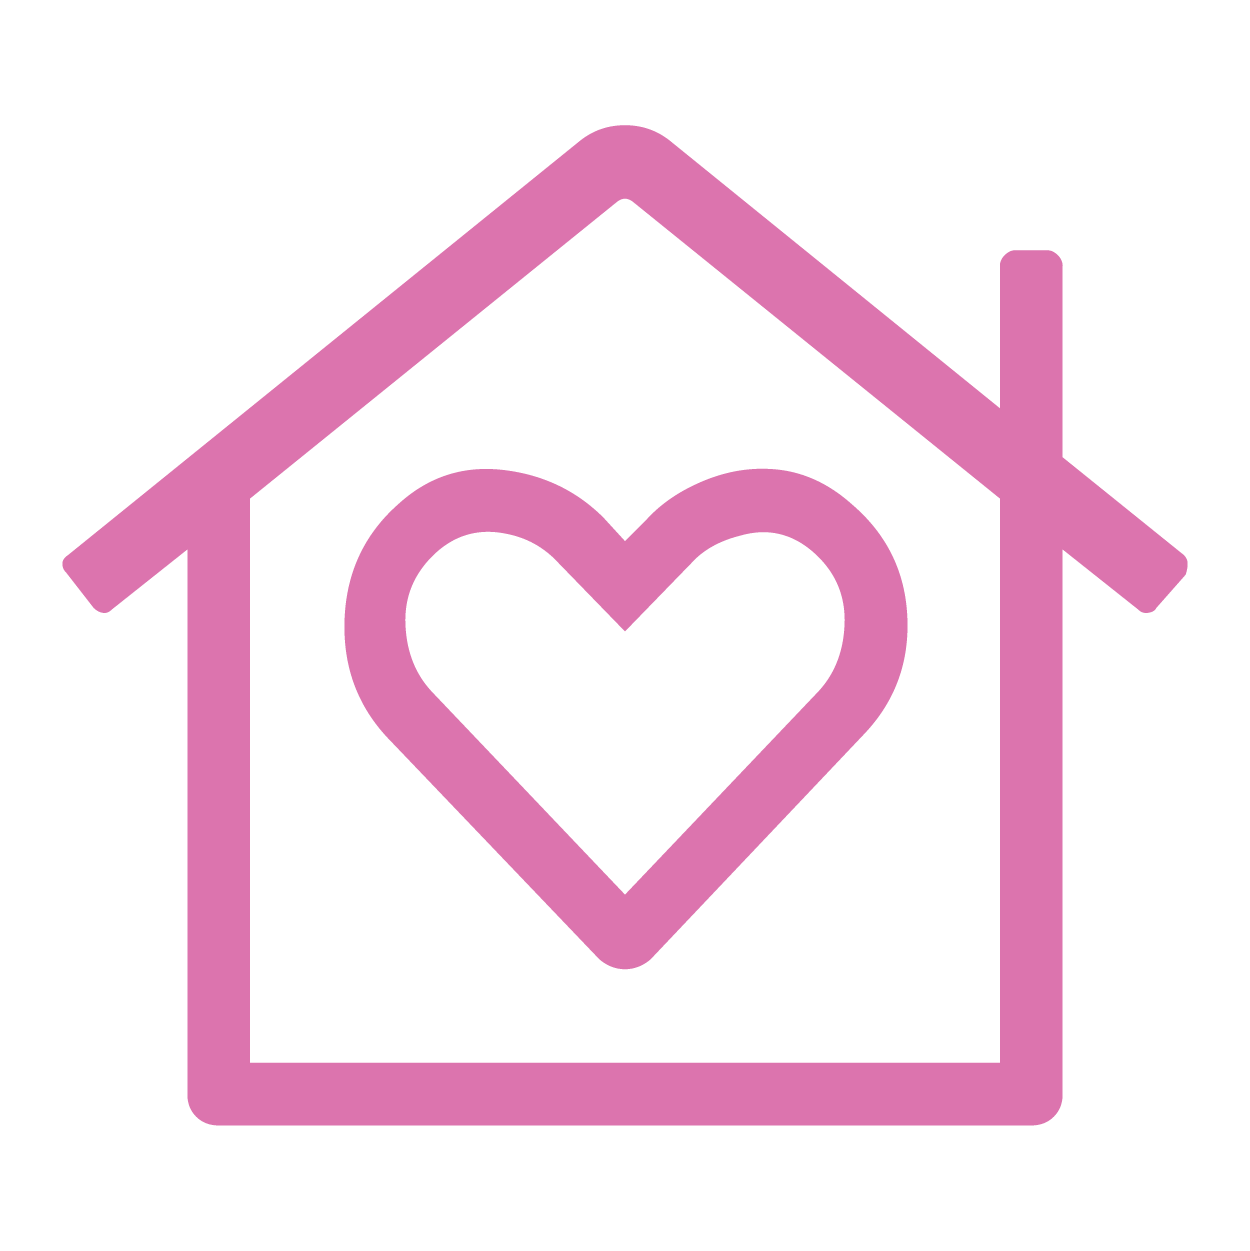 HQIN-icon_house-heart